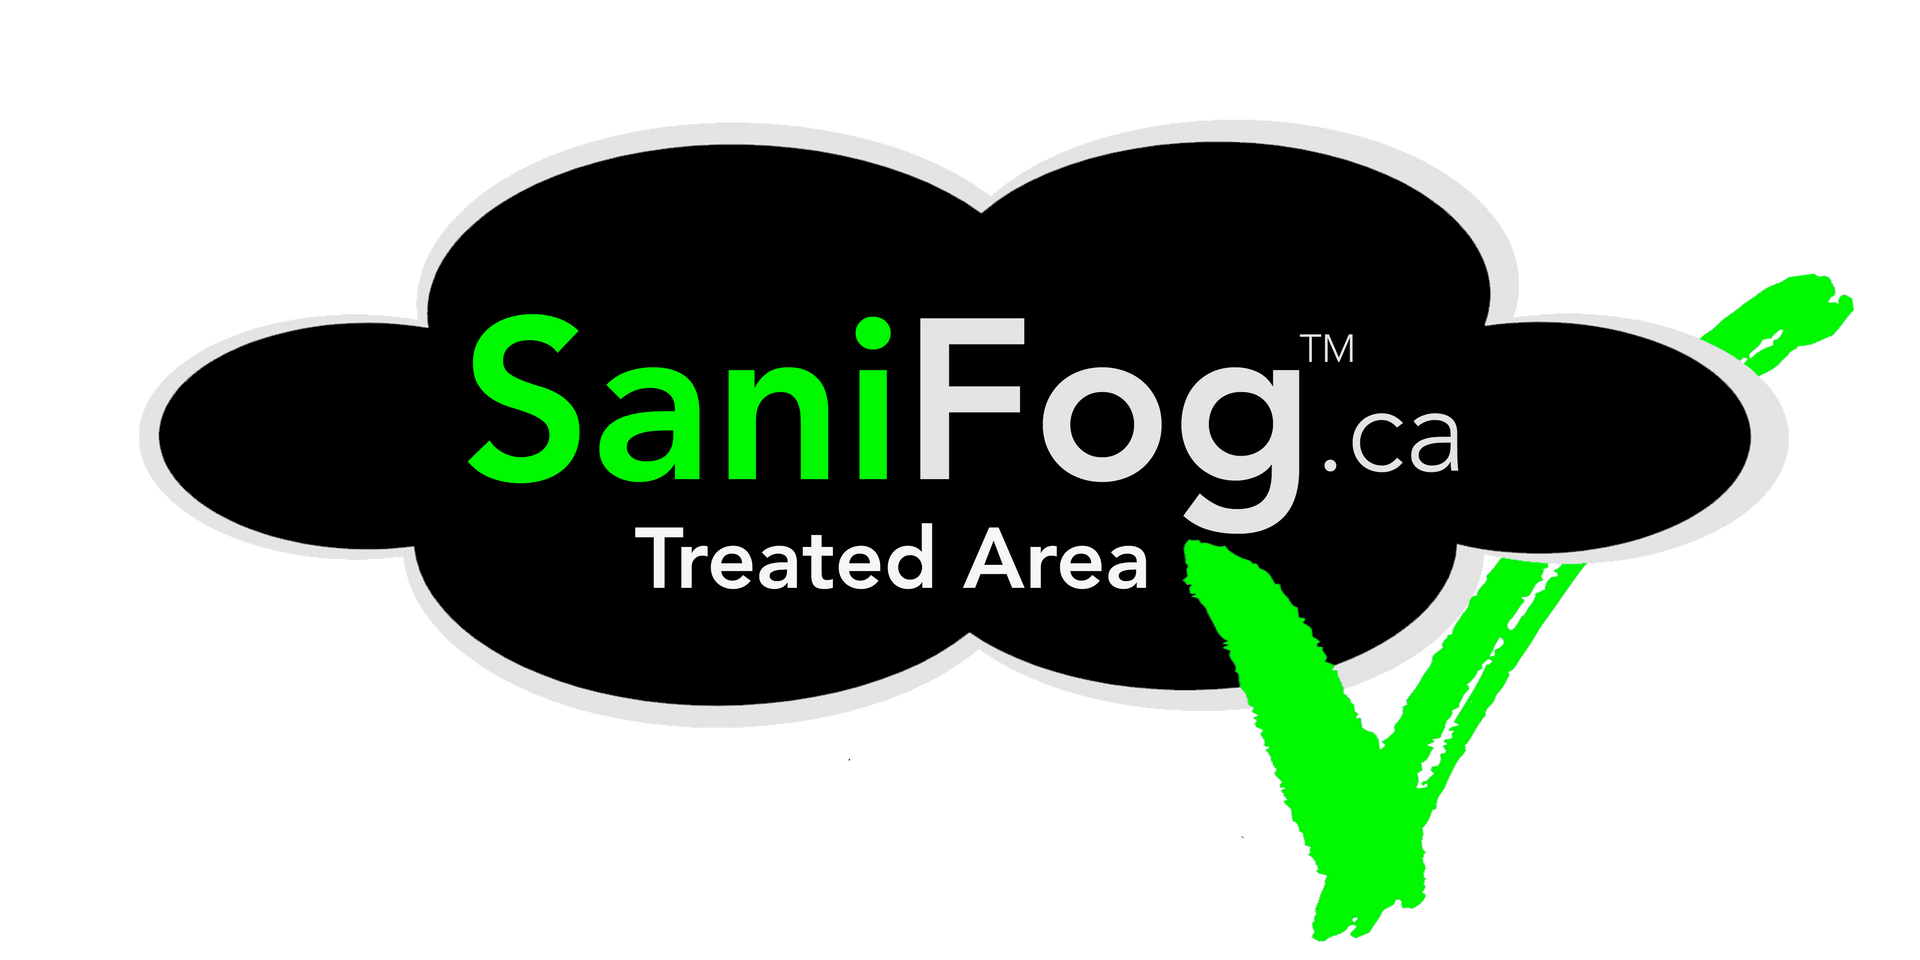 SaniFog.ca logo with checkmark under and